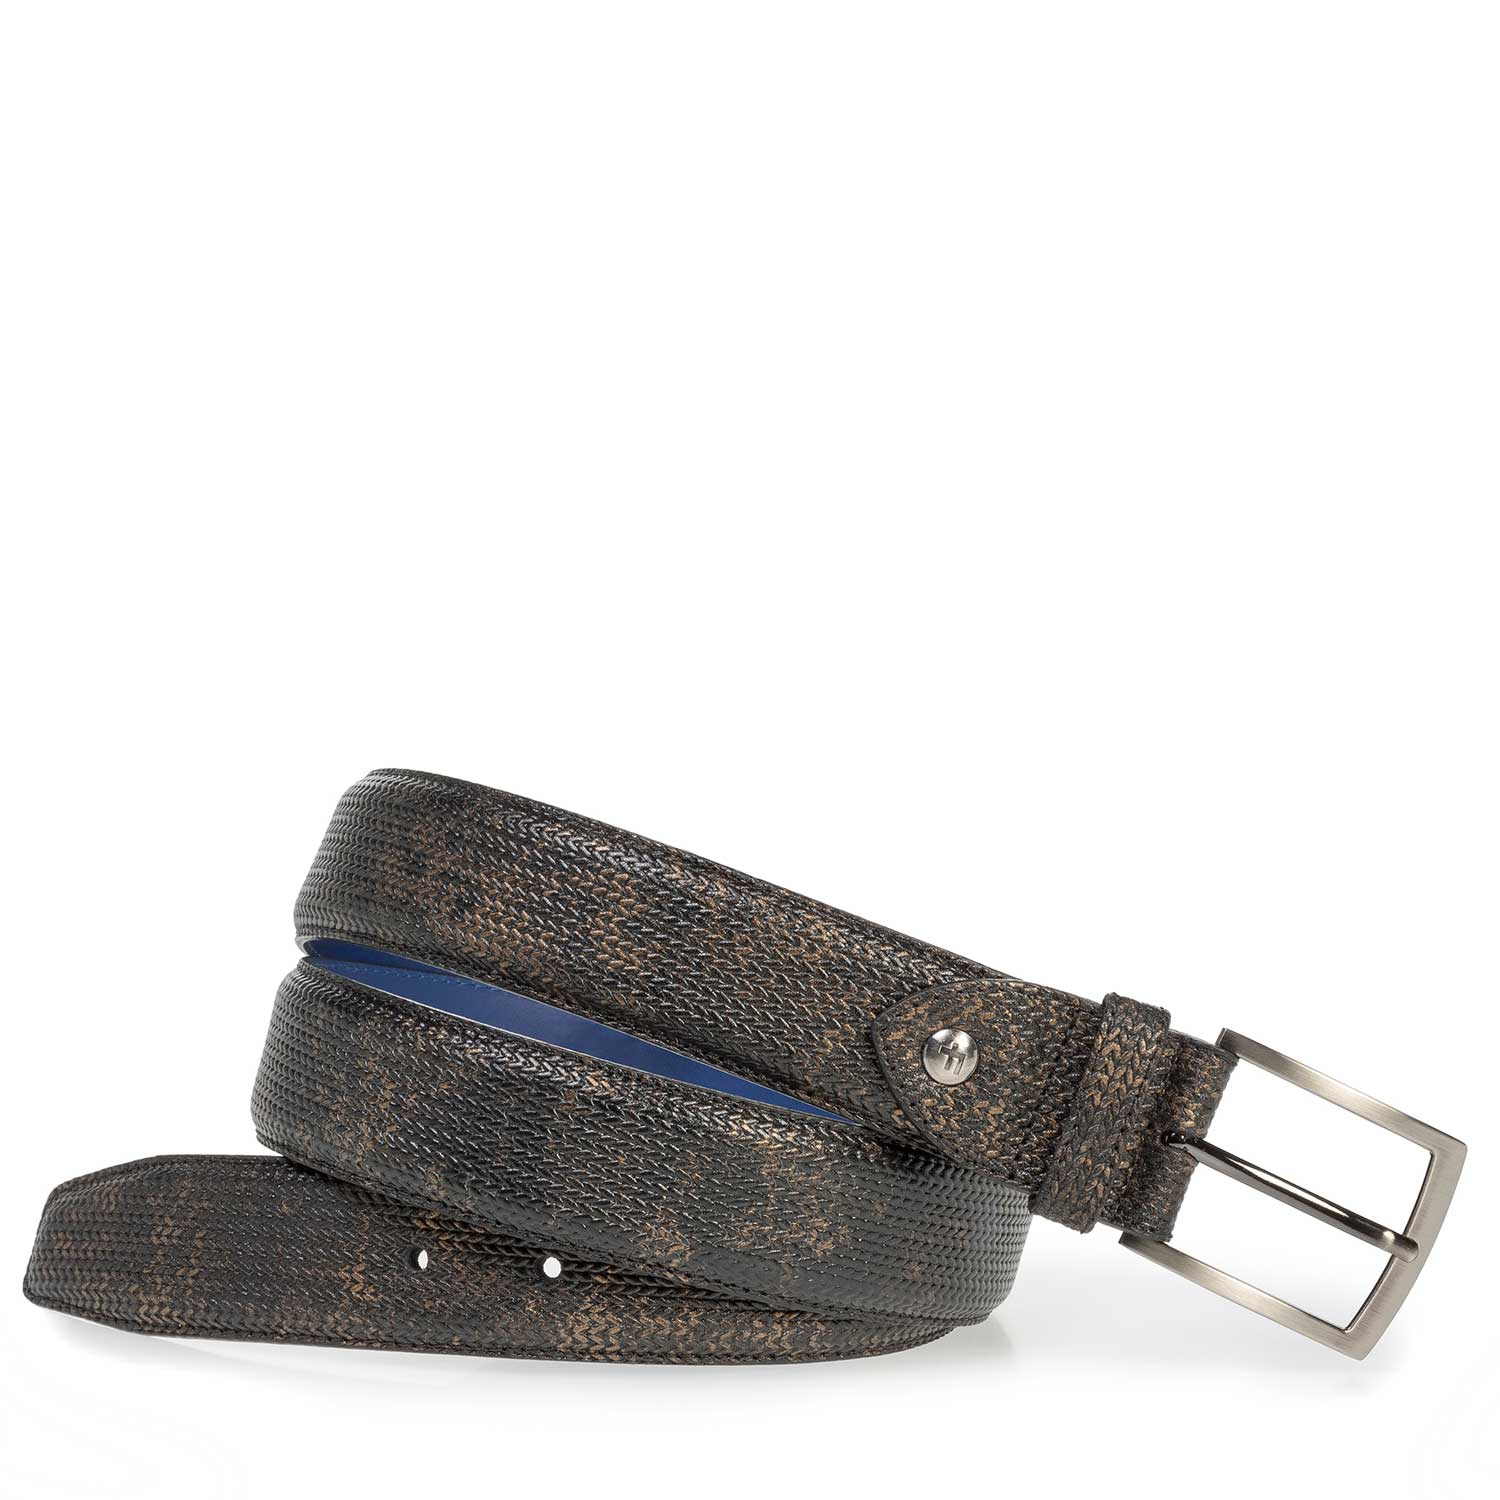 75201/29 - Bronze-coloured leather belt with metallic print